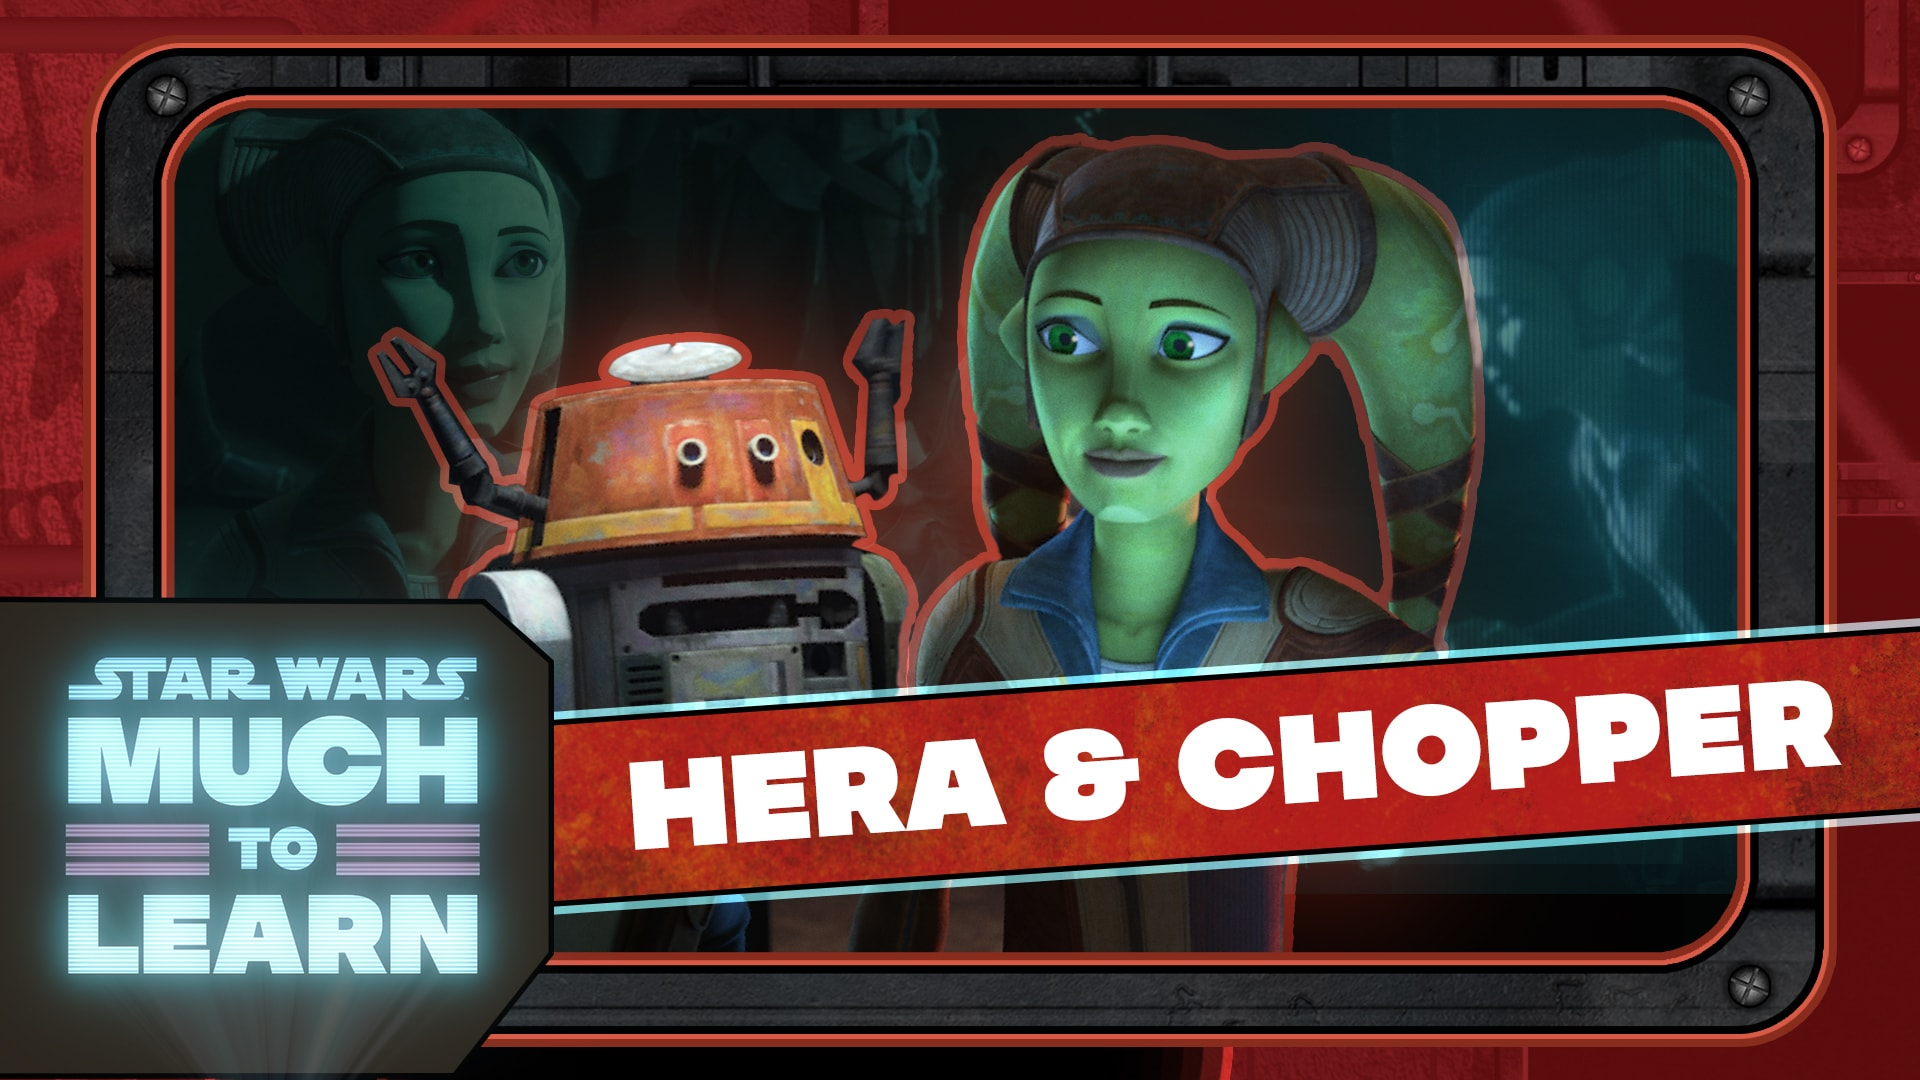 Hera and Chopper   Star Wars: Much to Learn